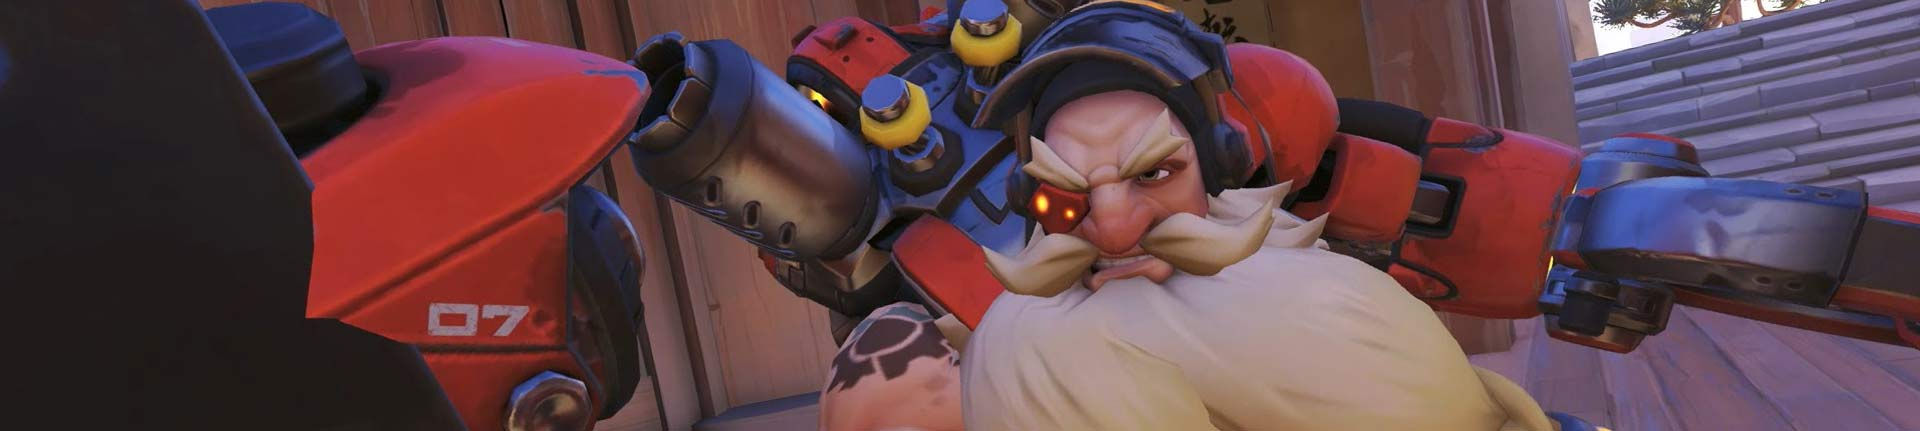 Console Overwatch players can now rejoice, as Torbjörn's jerk-off turrets are being nerfed: Here's why it's important